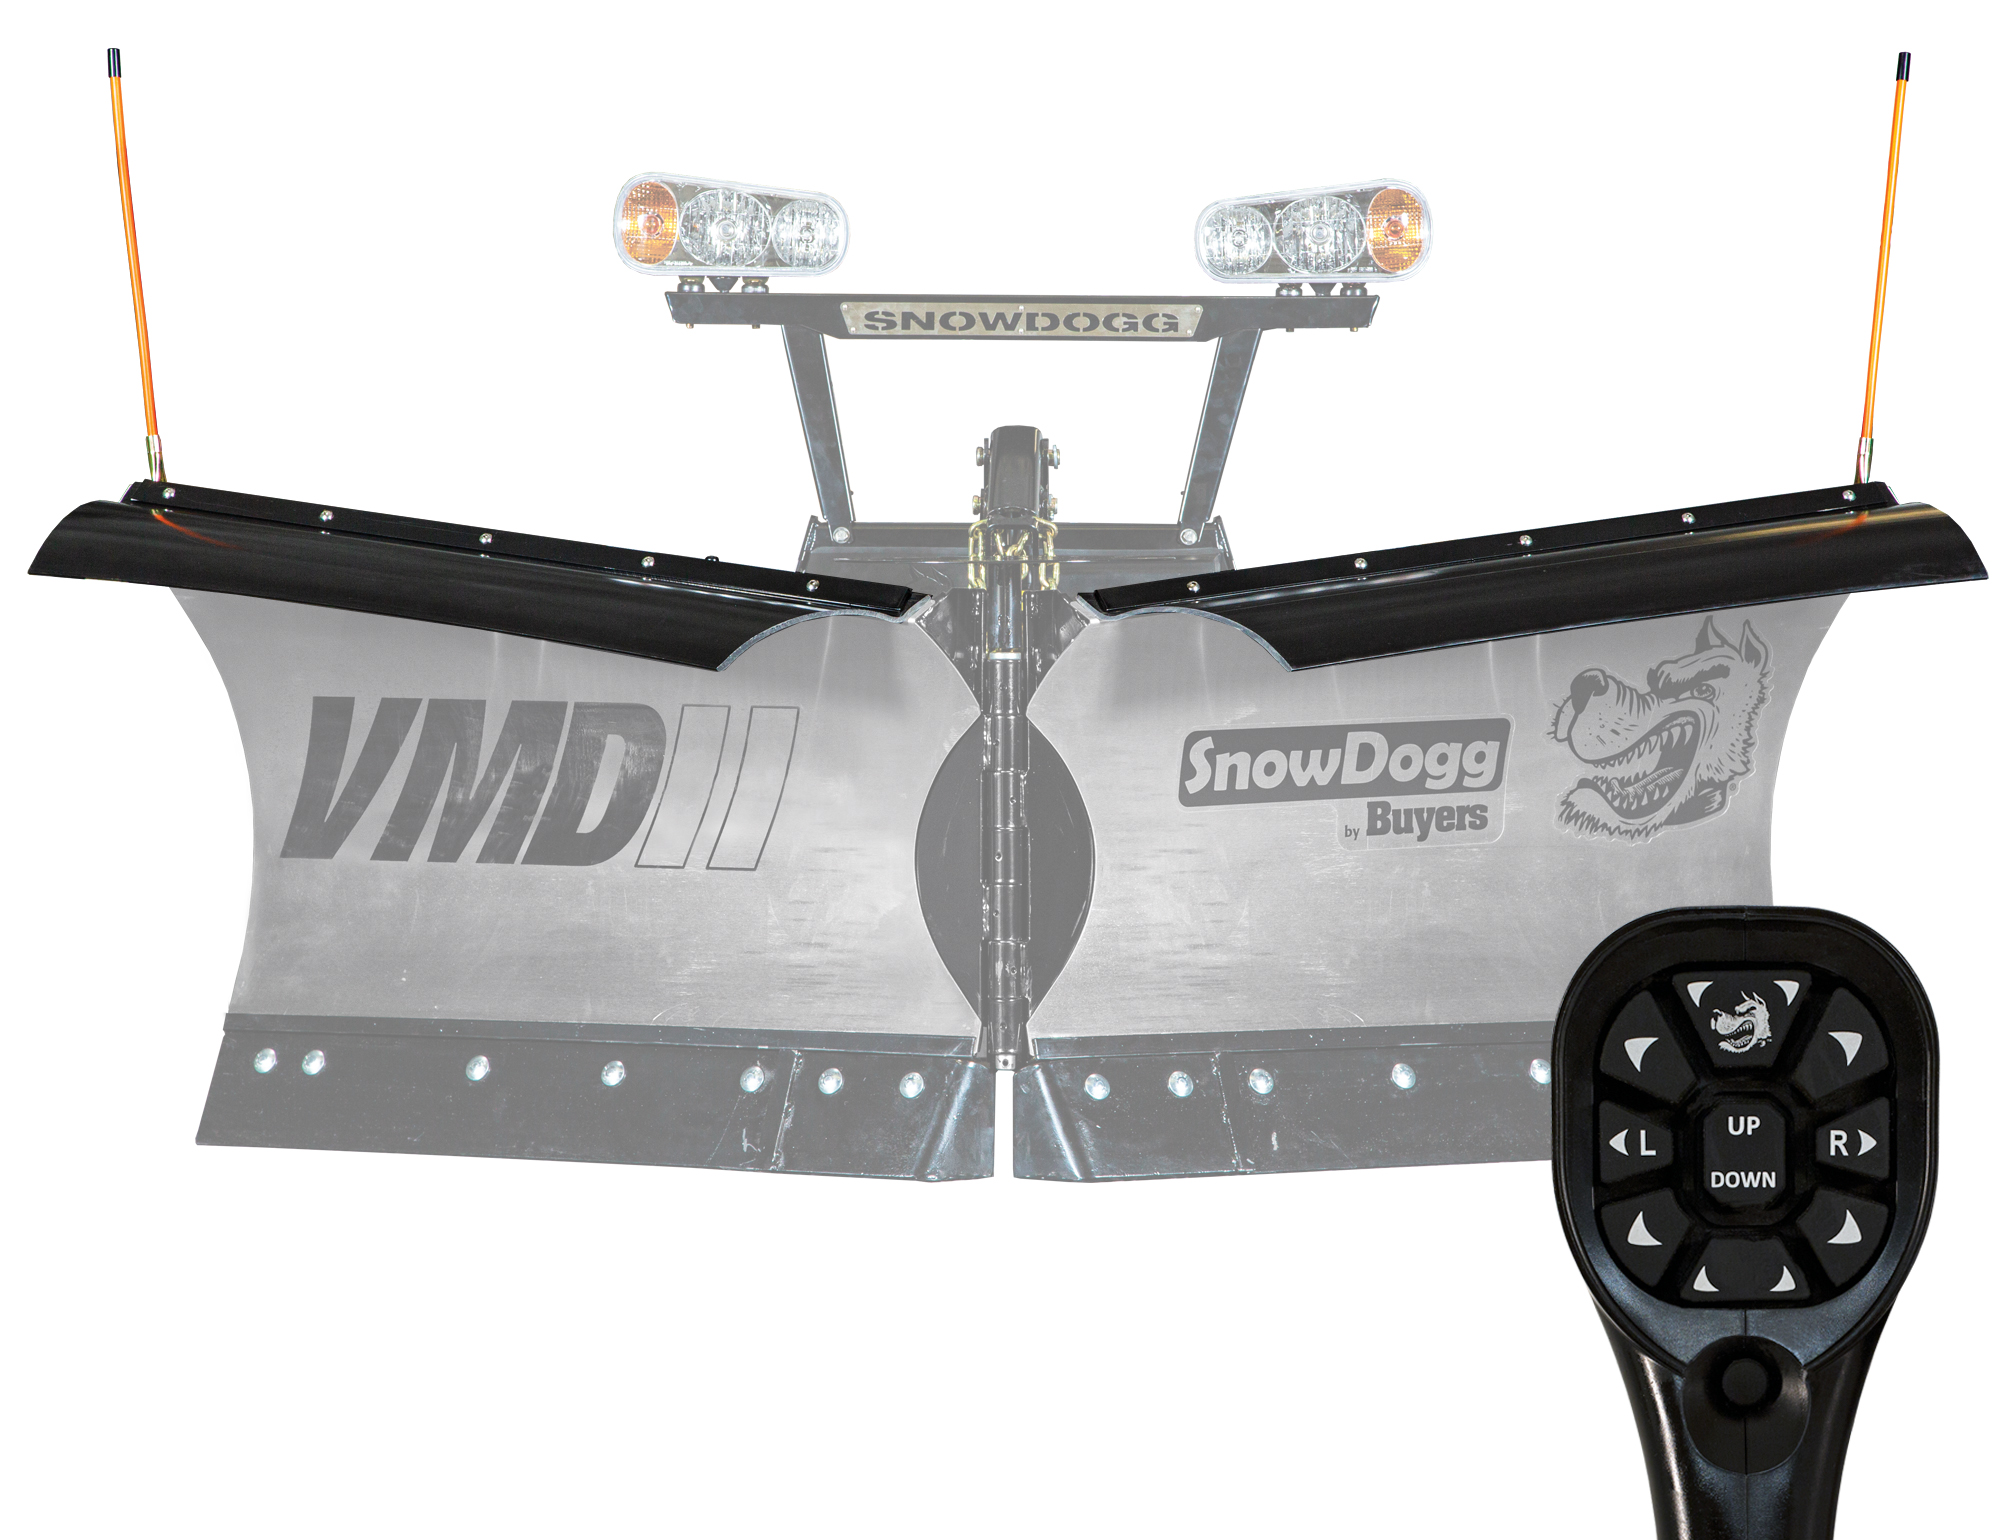 New Buyers VMD75II Model, V-plow Flare Top, Trip edge Stainless Steel V-Plow, MD